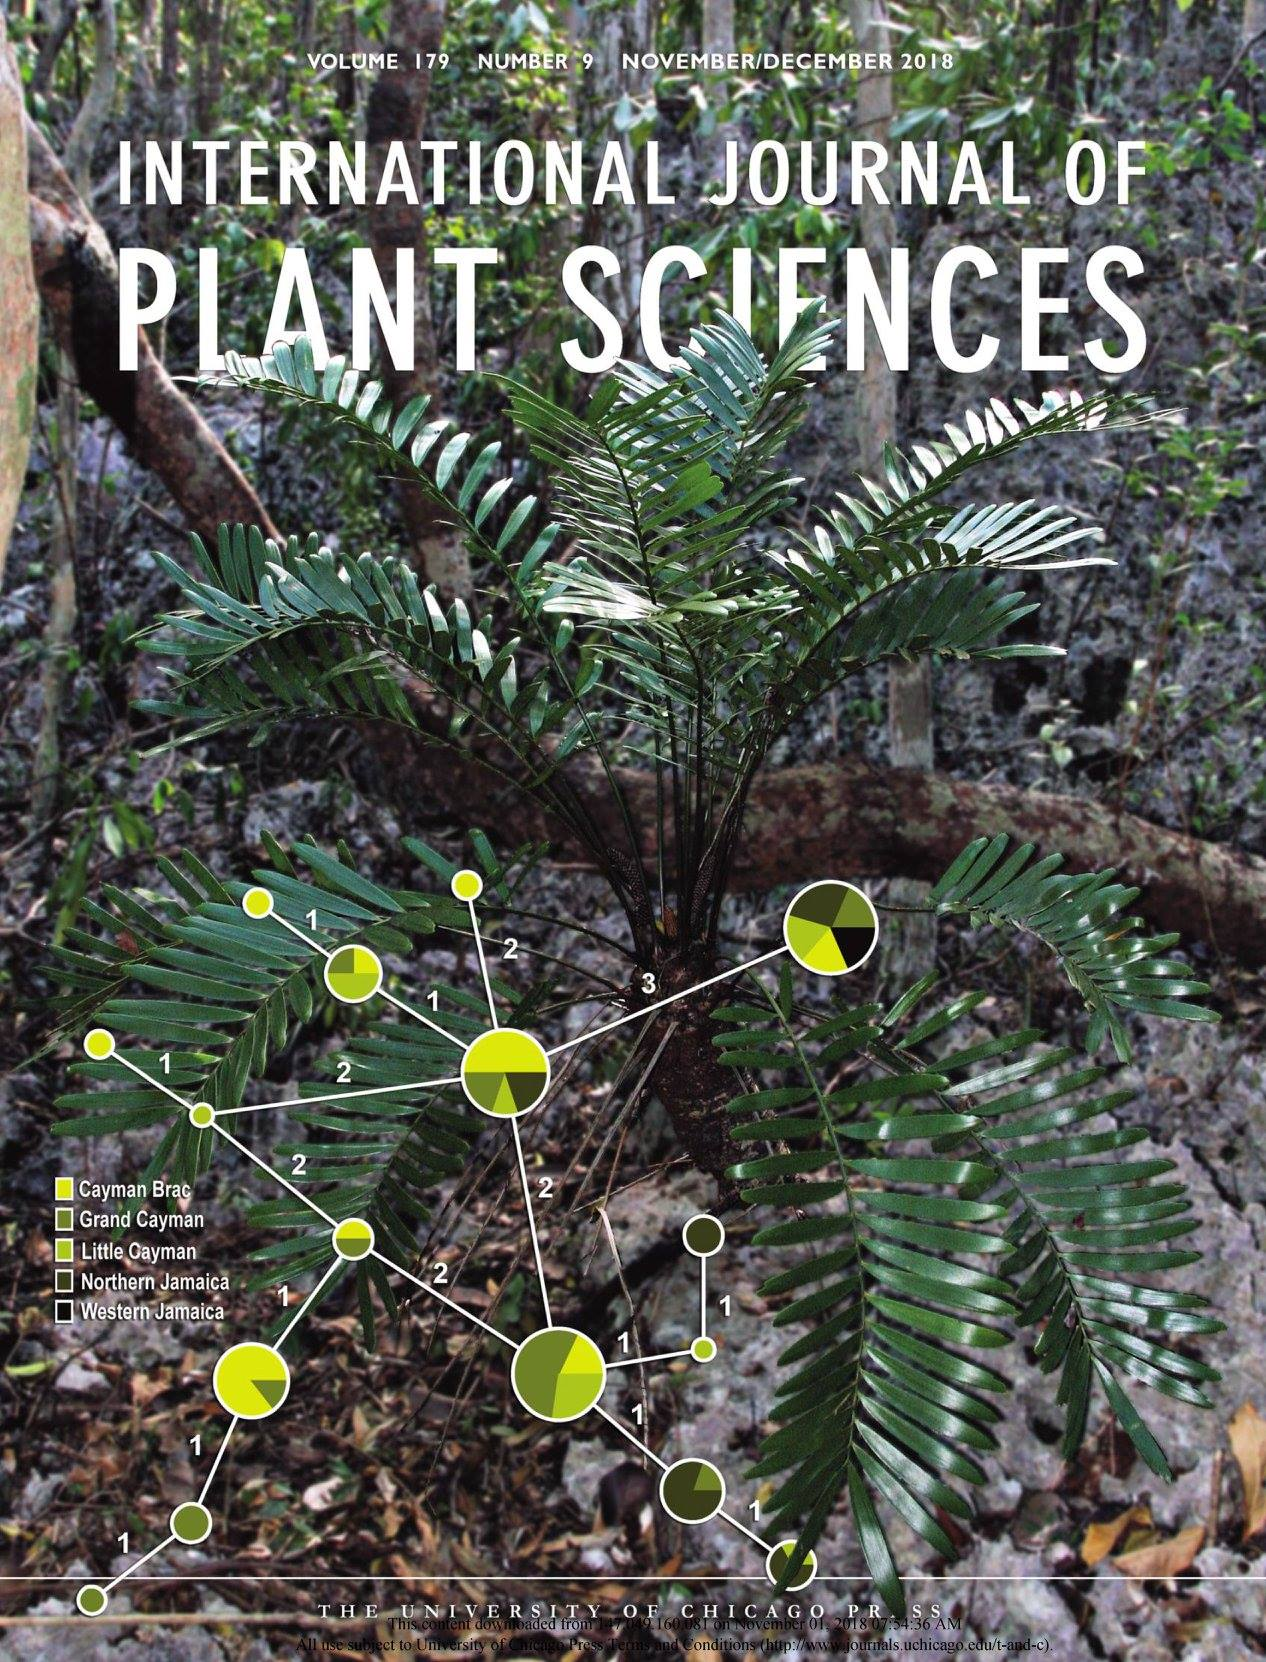 The cover of the March/April 2018 issue of the International Journal of Plant Sciences